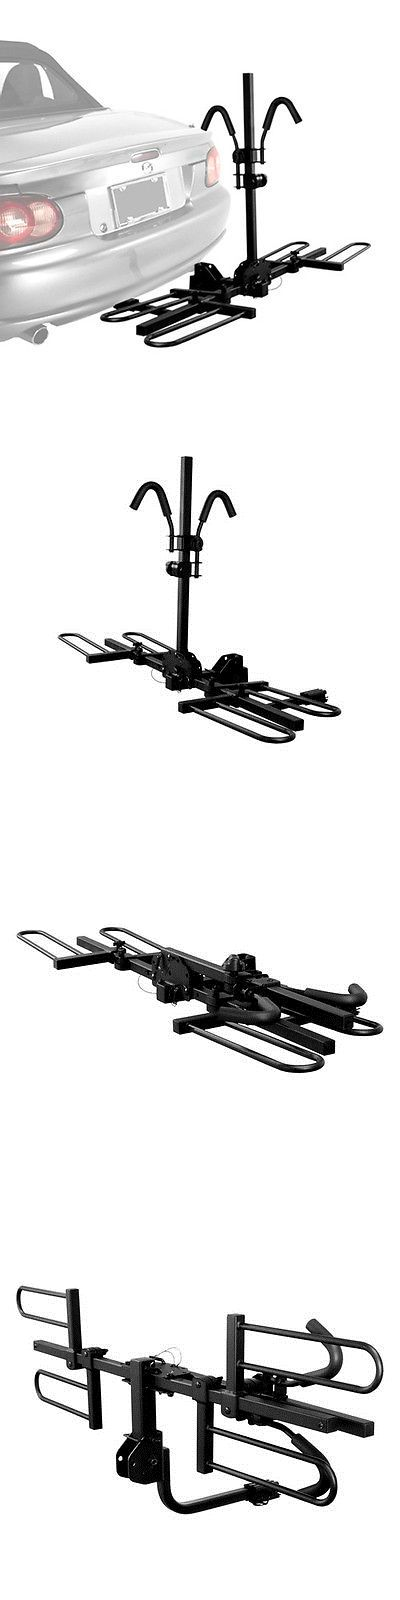 Car and Truck Racks 177849: Curt 18084 - Tray-Style Hitch Mount Bike Rack BUY IT NOW ONLY: $127.31